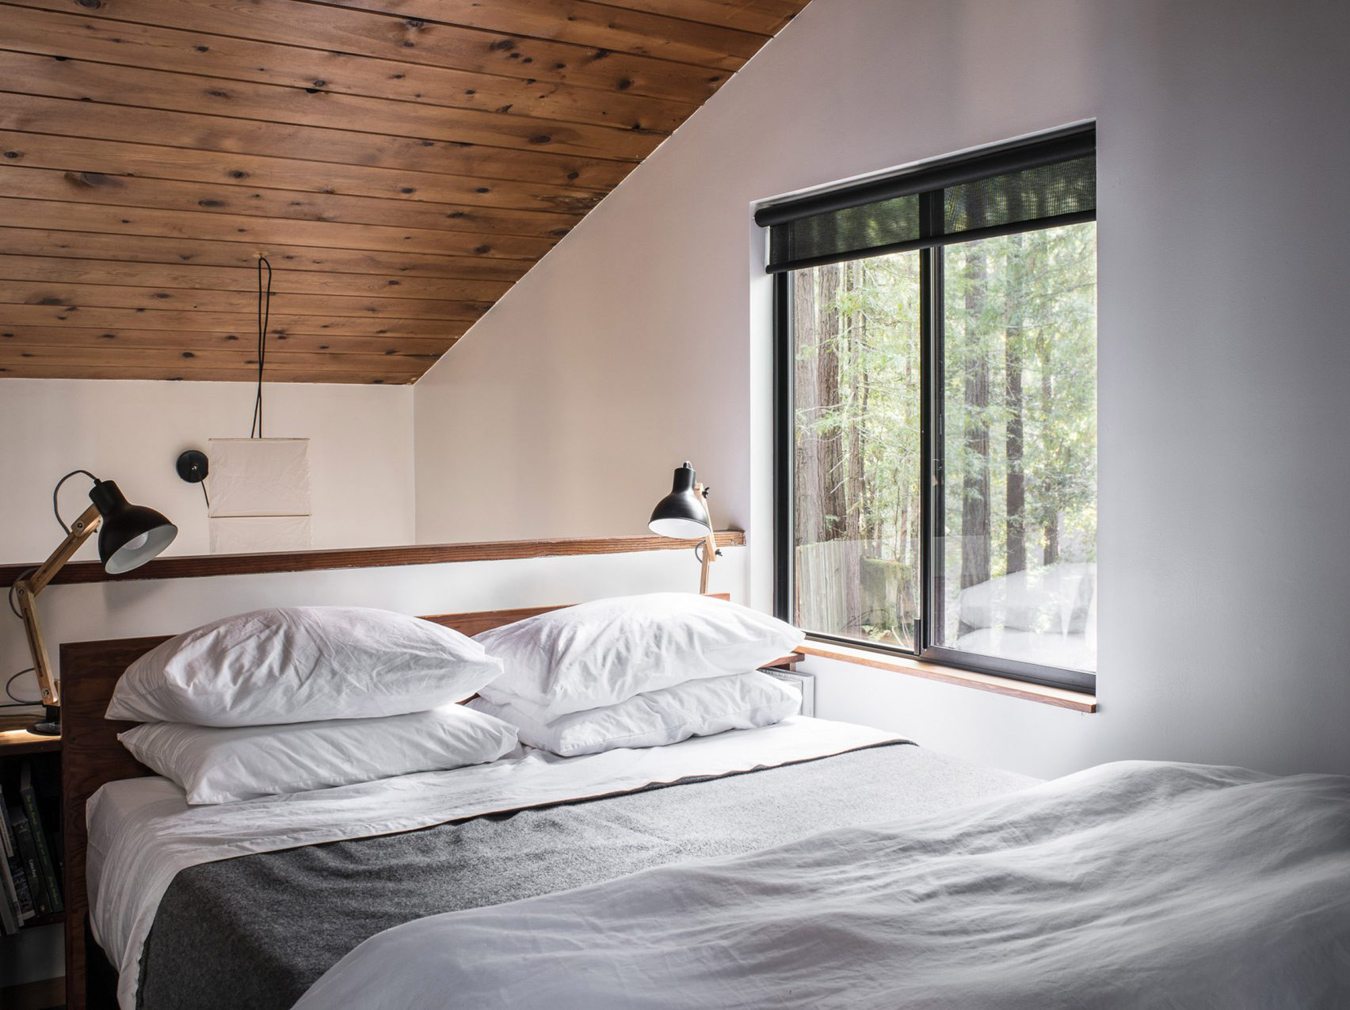 Restored cabin by Joseph Esherick comes up for rent in California's Sea Ranch